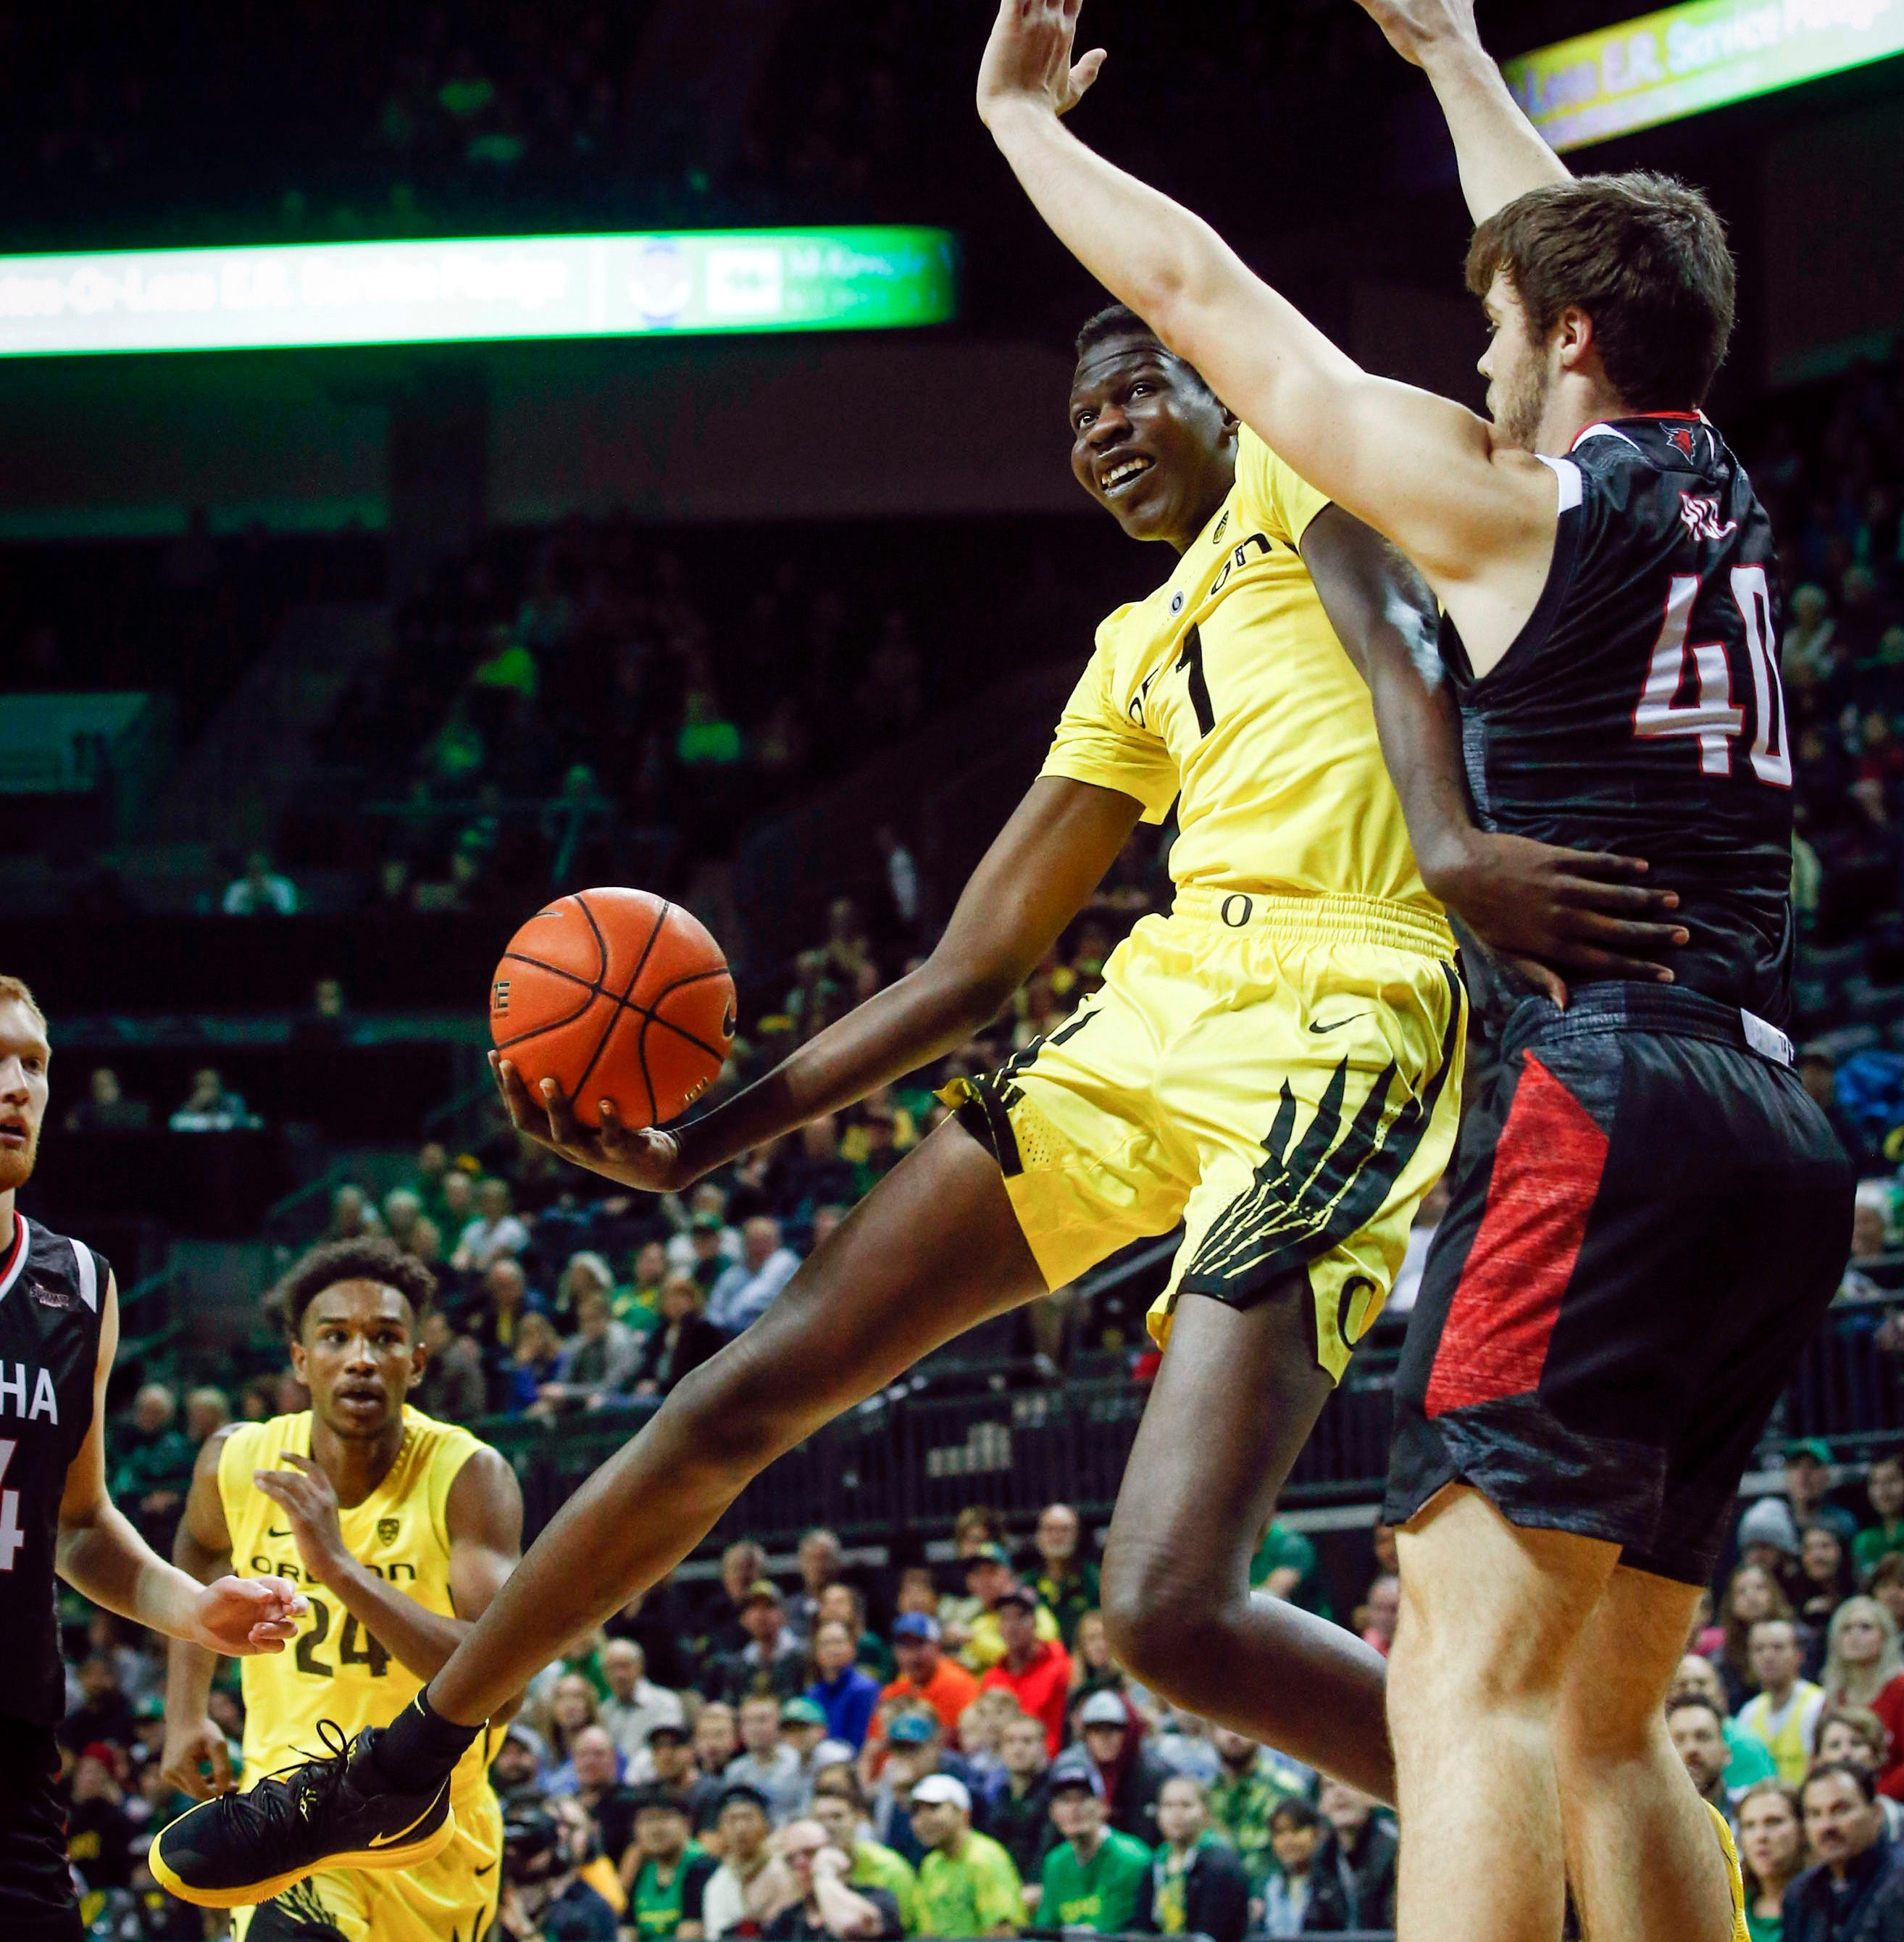 Wooten scores career-best 20, leads Oregon over Omaha 84-61